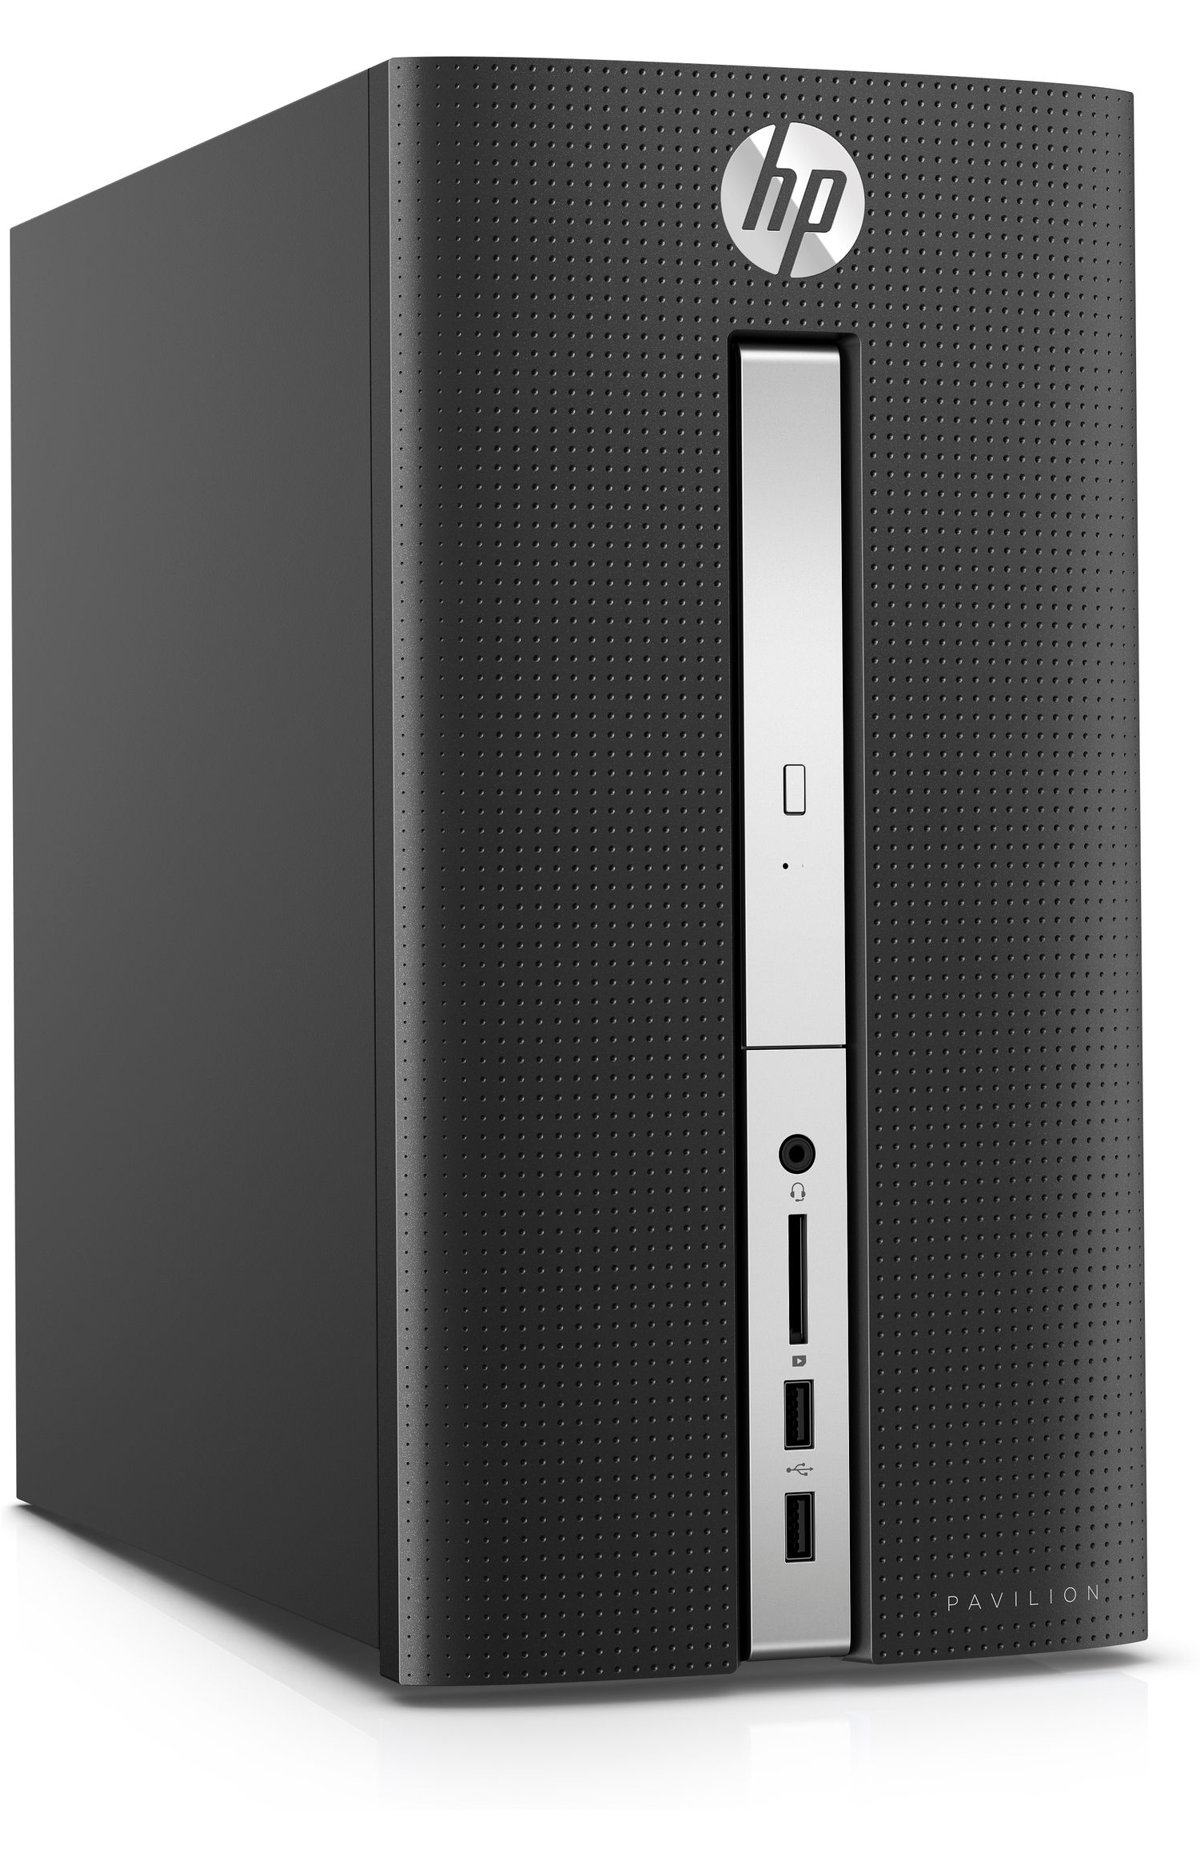 HP Pavilion Desktop PC 7th Gen Intel Core i5 8GB Memory16GB Intel Optane Memory 1TB Hard Drive Windows 10 Home 570 p050 by fice Depot & ficeMax